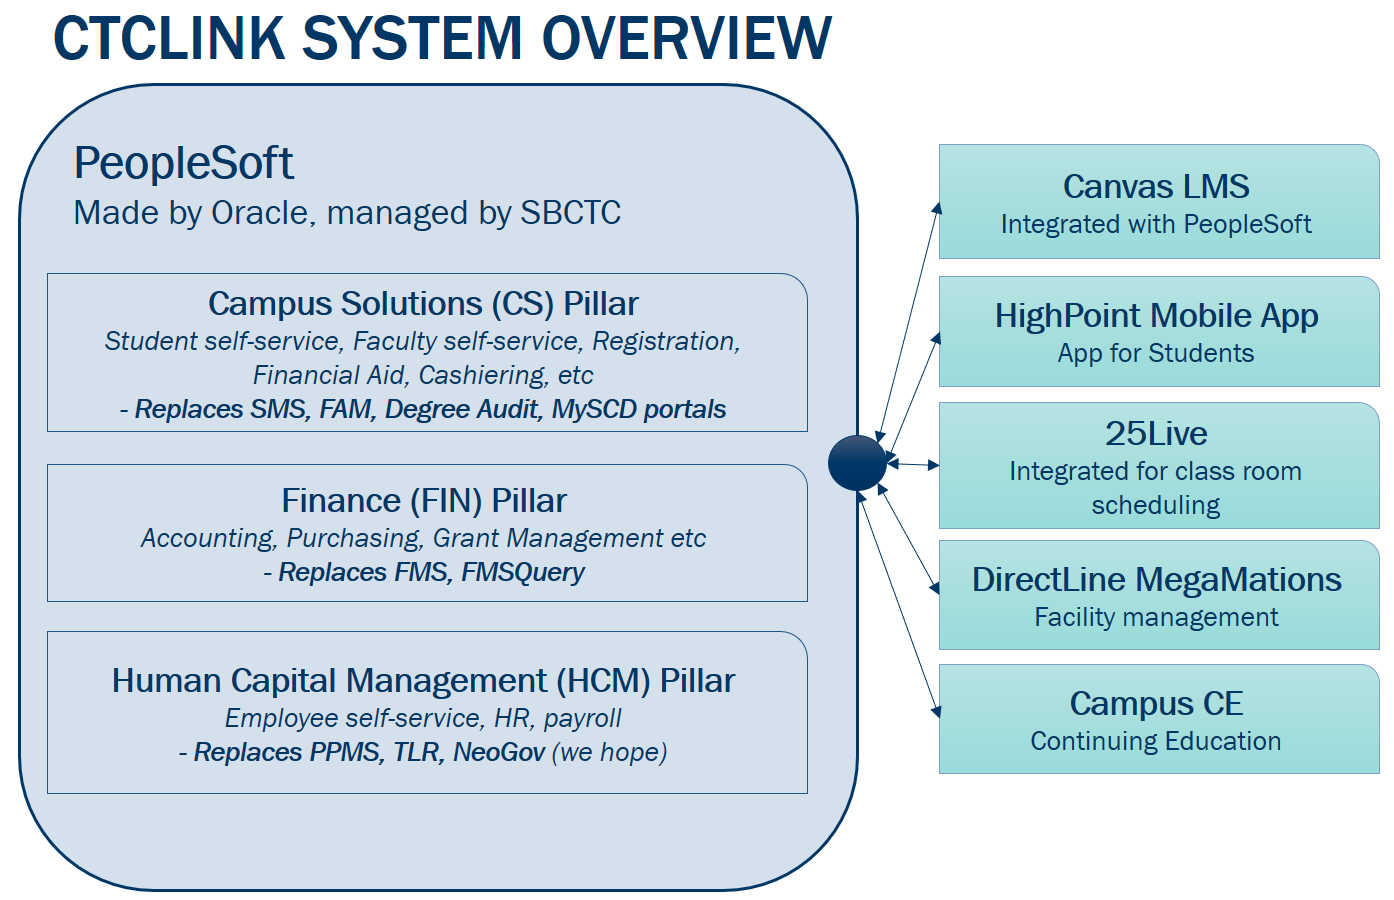 Diagram showing system connections between PeopleSoft Campus Solutions, Finance, and Human Capital Management.